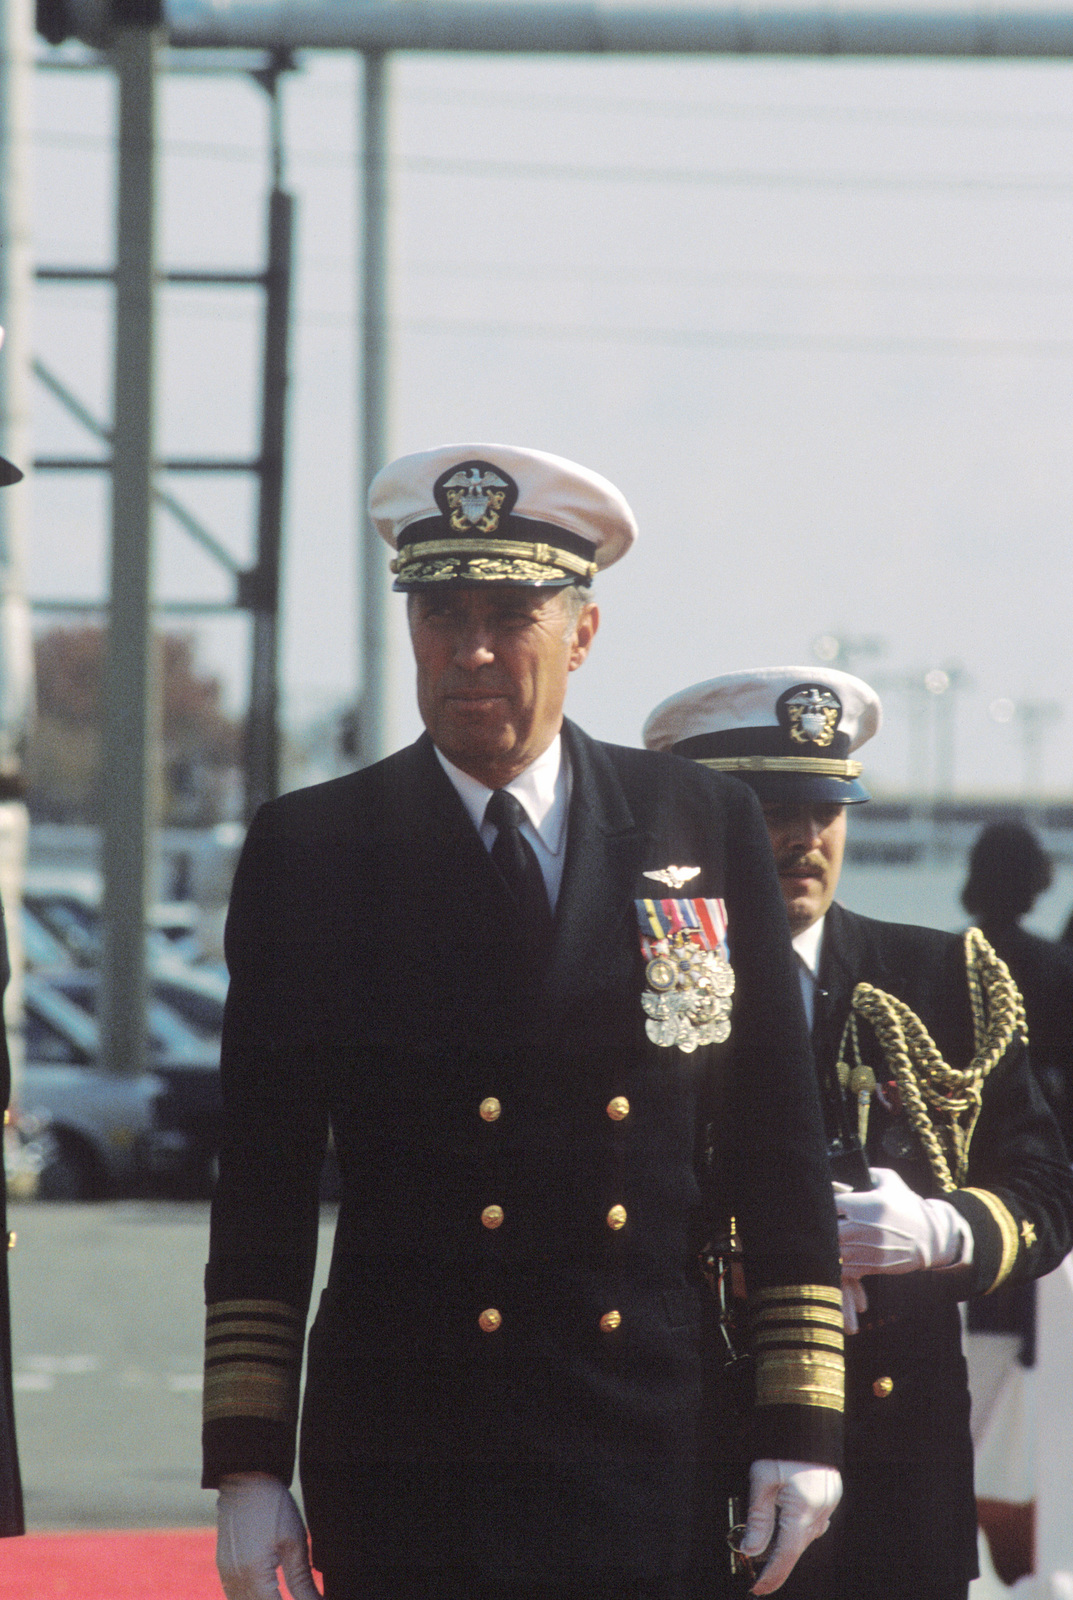 Admiral (ADM) Wesley L. McDonald, commander in chief, Atlantic and Atlantic Fleet, arrives for the commissioning ceremony of the nuclear-powered attack submarine USS BUFFALO (SSN 715)